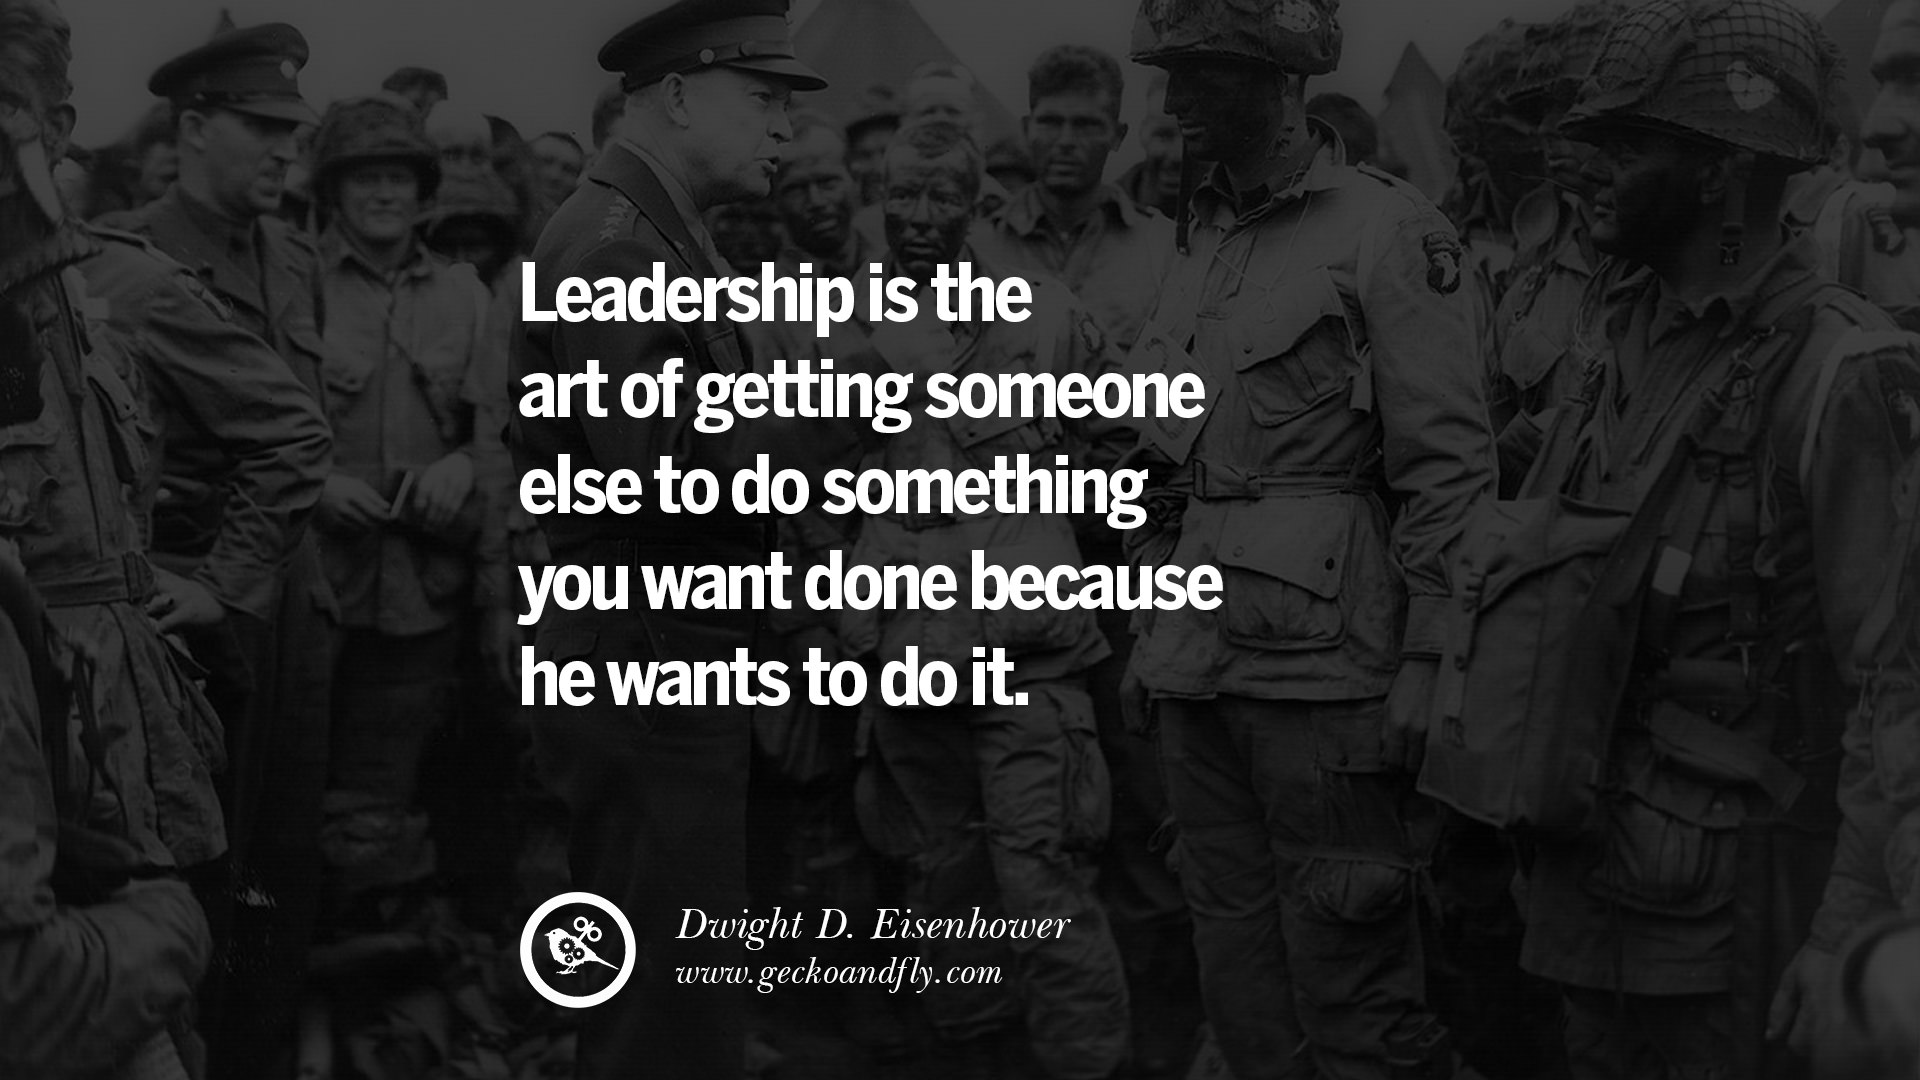 why do you want to be a leader essay uplifting and motivational  uplifting and motivational quotes on management leadership leadership is the art of getting someone else to